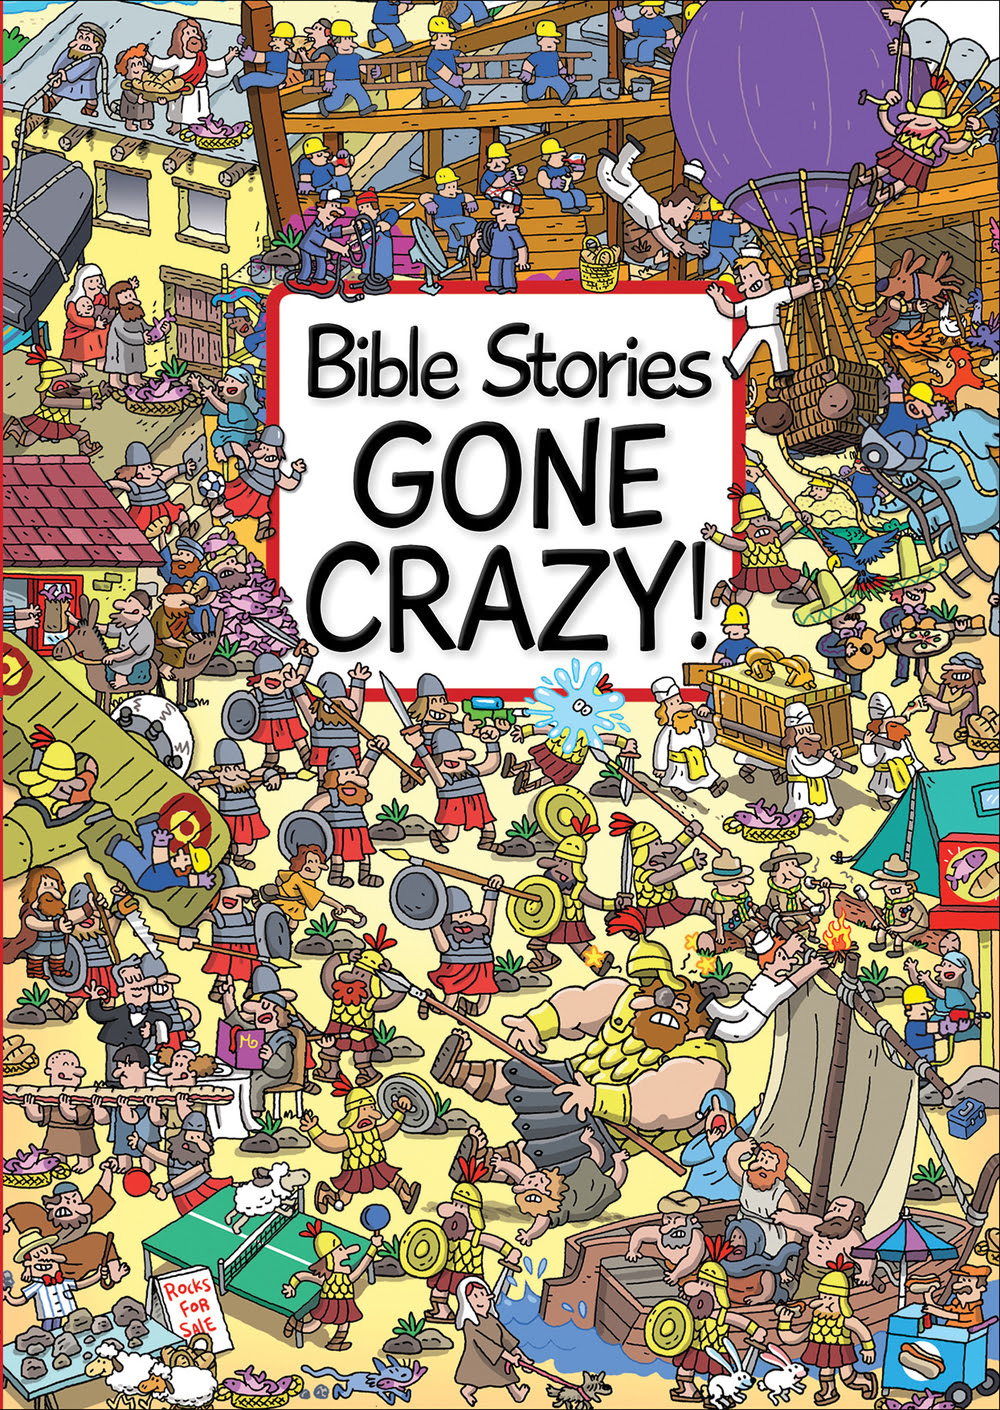 review of bible stories gone crazy by josh edwards and emiliano